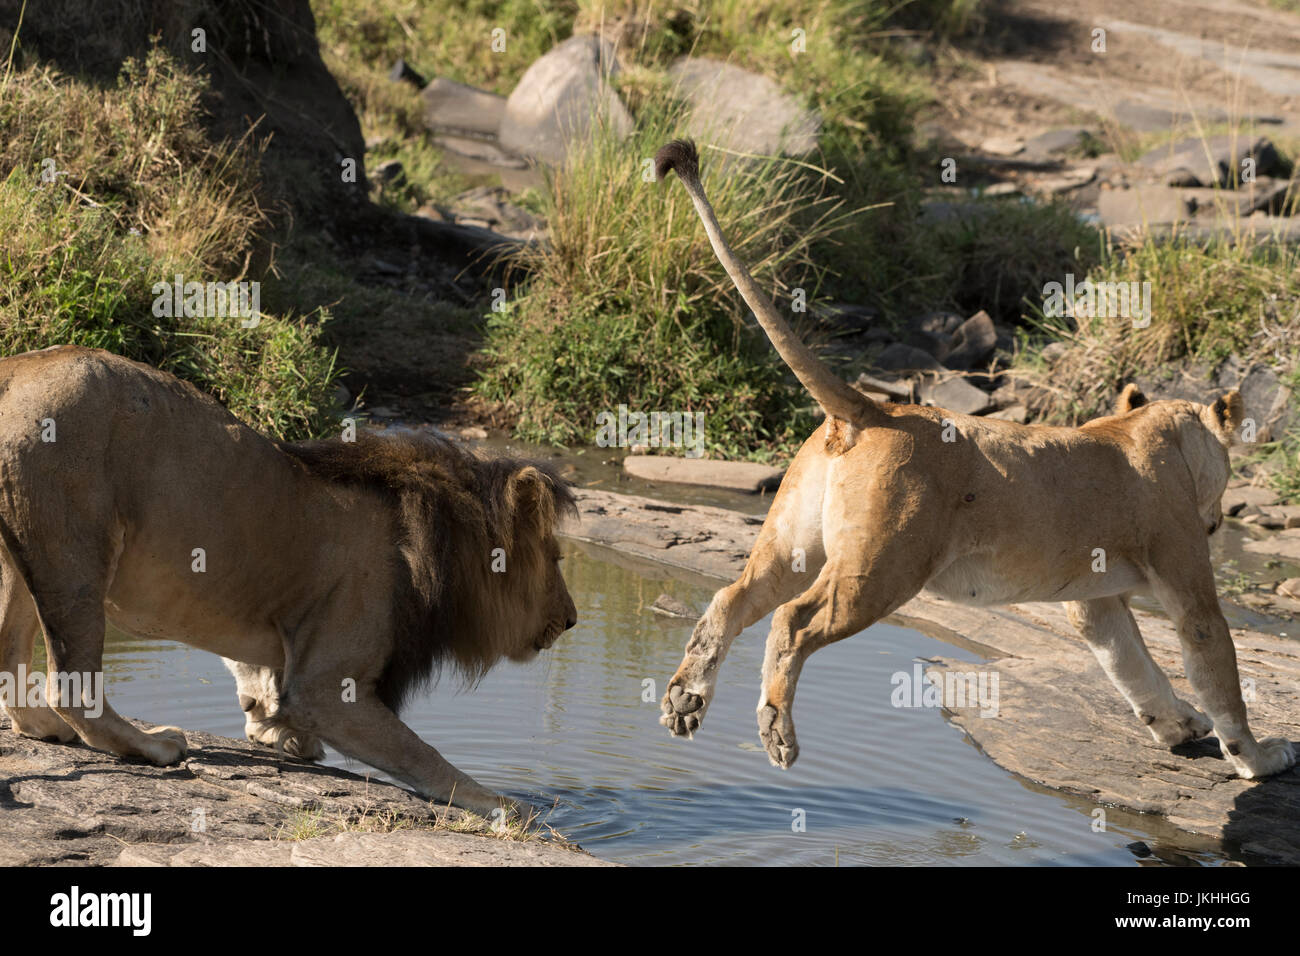 Lion and jumping lioness at waterhole - Stock Image